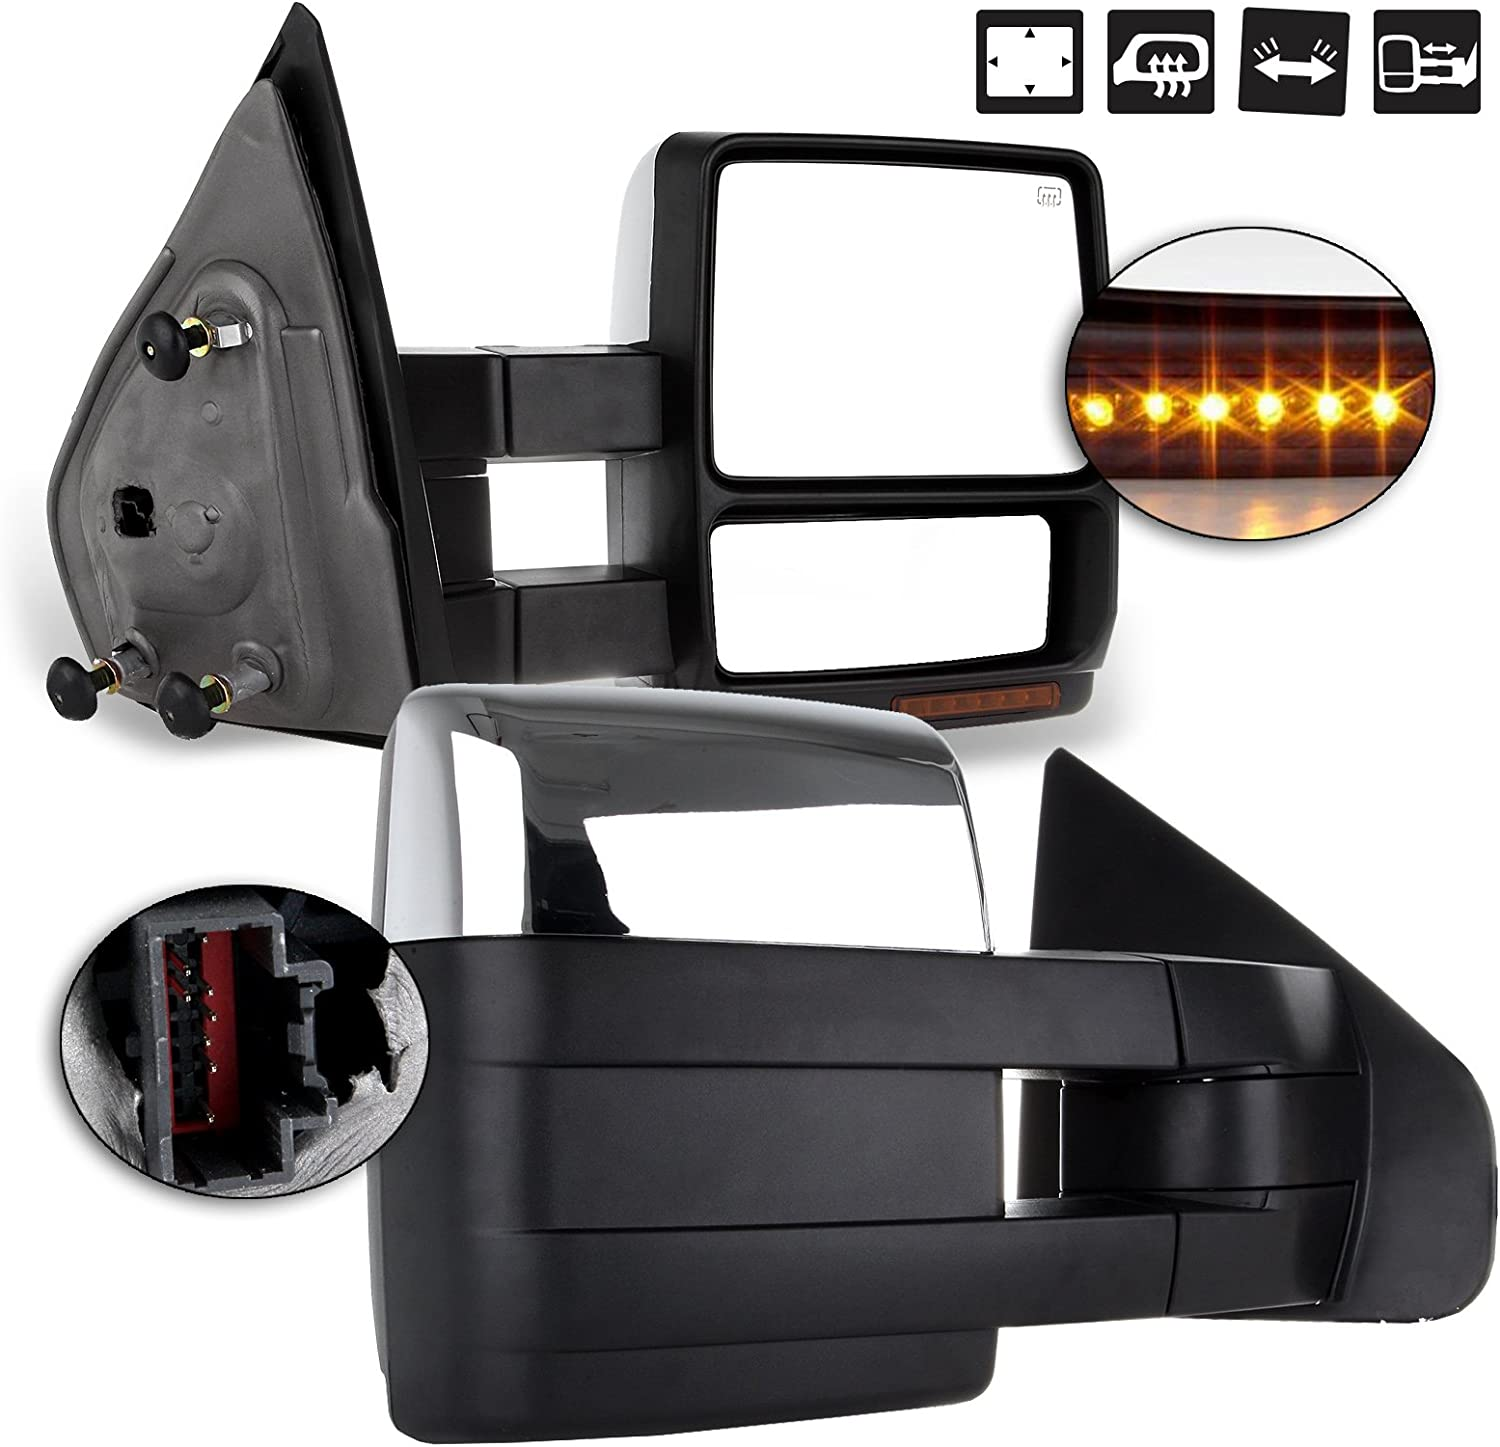 LSAILON Towing Mirrors Fit for 2004-2014 Ford F150 1997-1999 Ford F-250 Tow Mirrors with LH Side and RH Side Power Operation Heated Turn Signal Puddle Light Chrome Housing